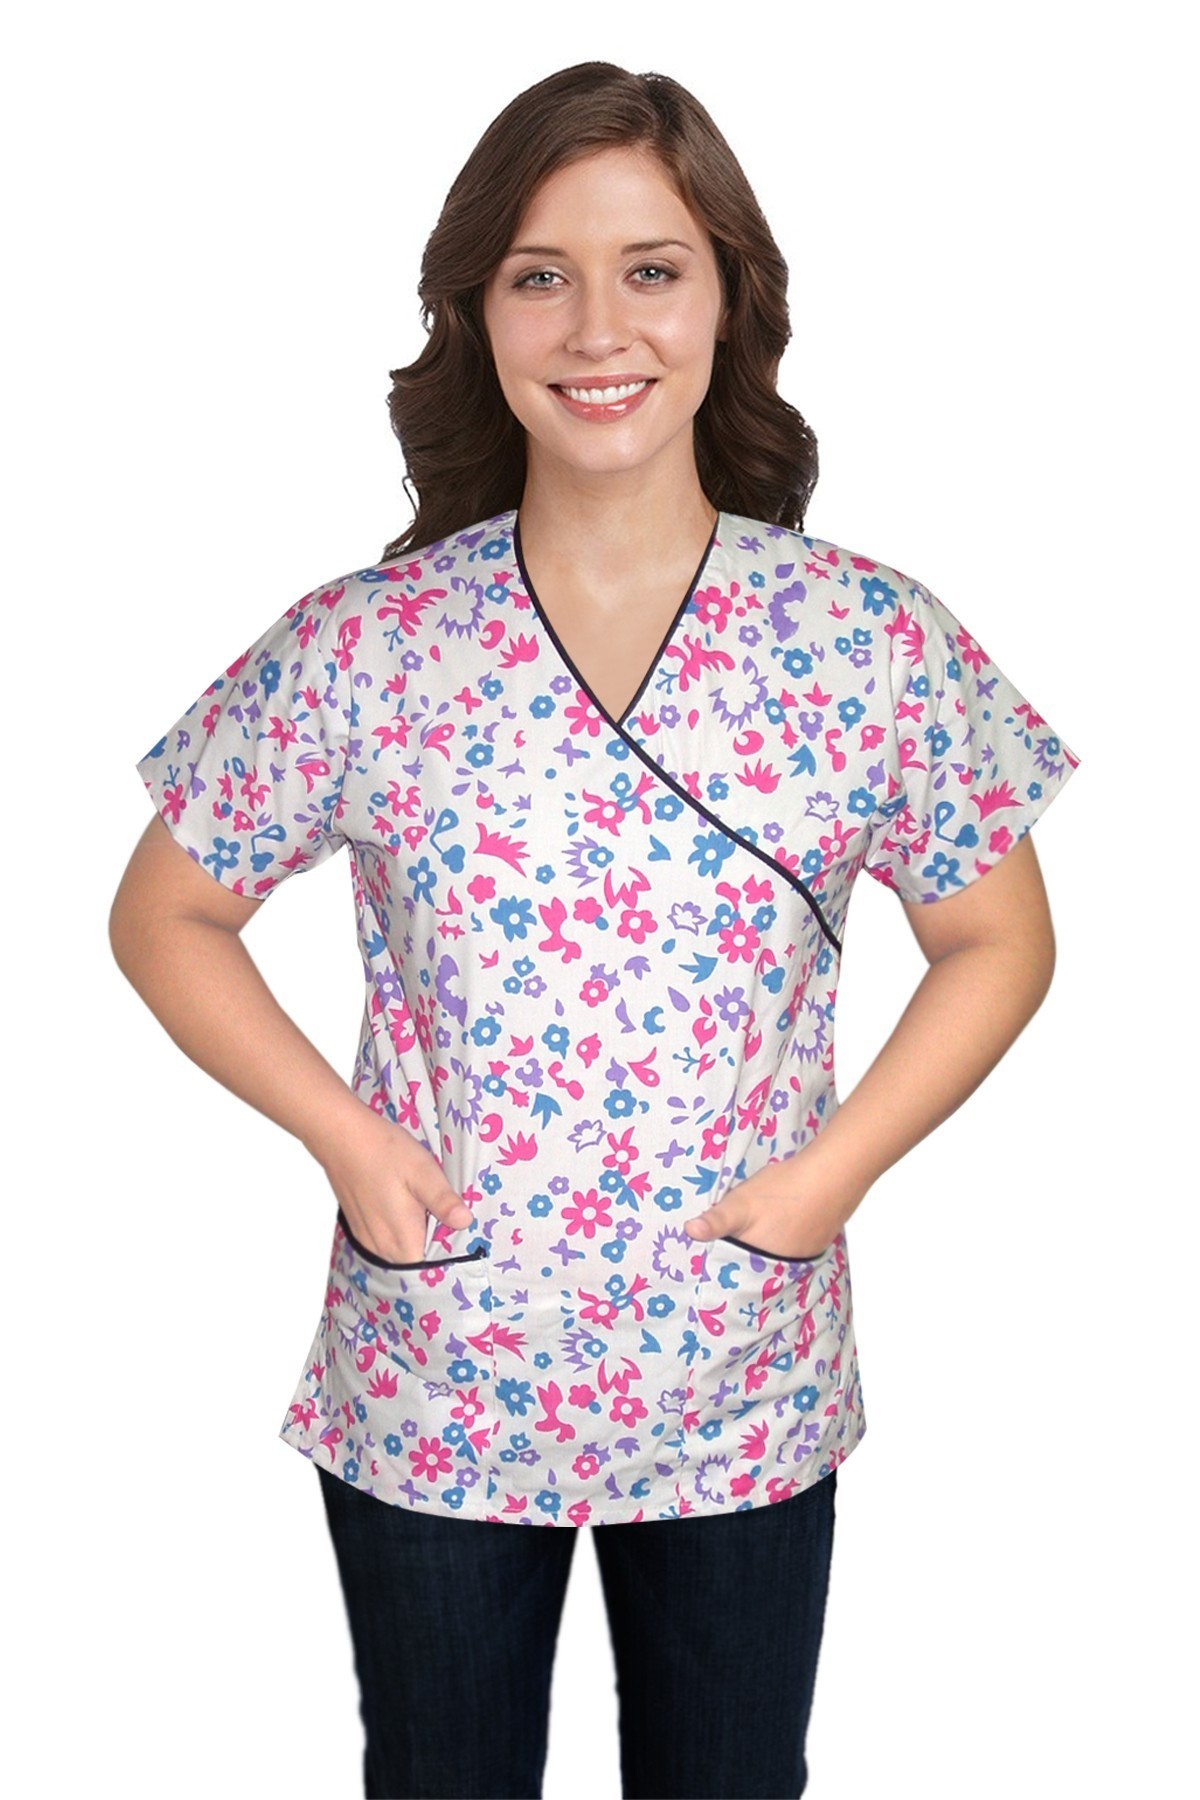 Printed scrub set mock wrap 5 pocket half sleeve in multi floral with black piping(top 3 pocket with bottom 2 pocket boot cut)